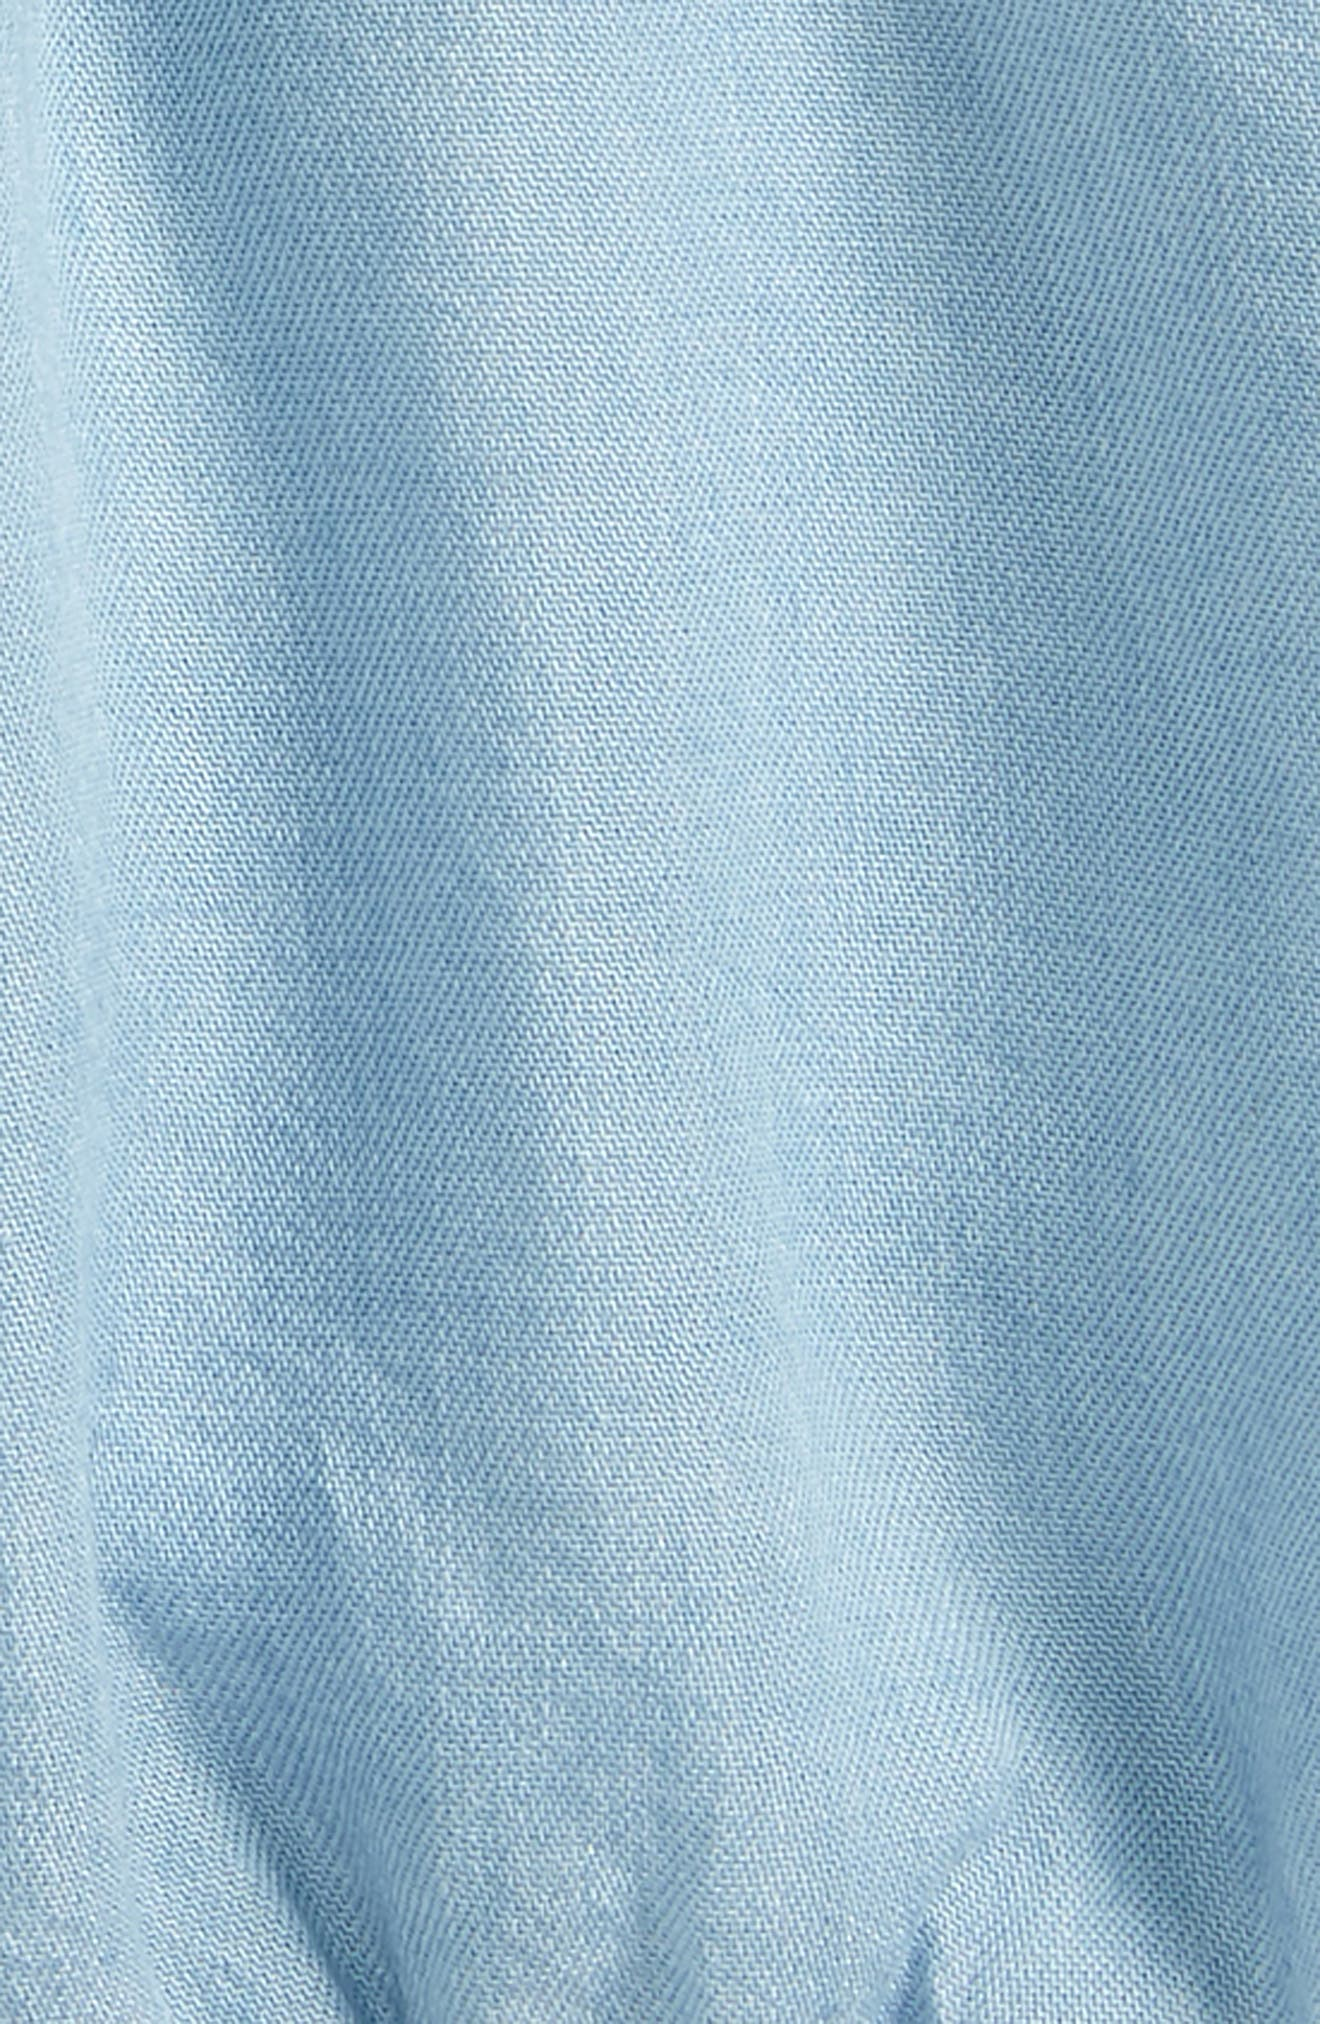 Essential Shorts,                             Alternate thumbnail 2, color,                             Light Blue Wash